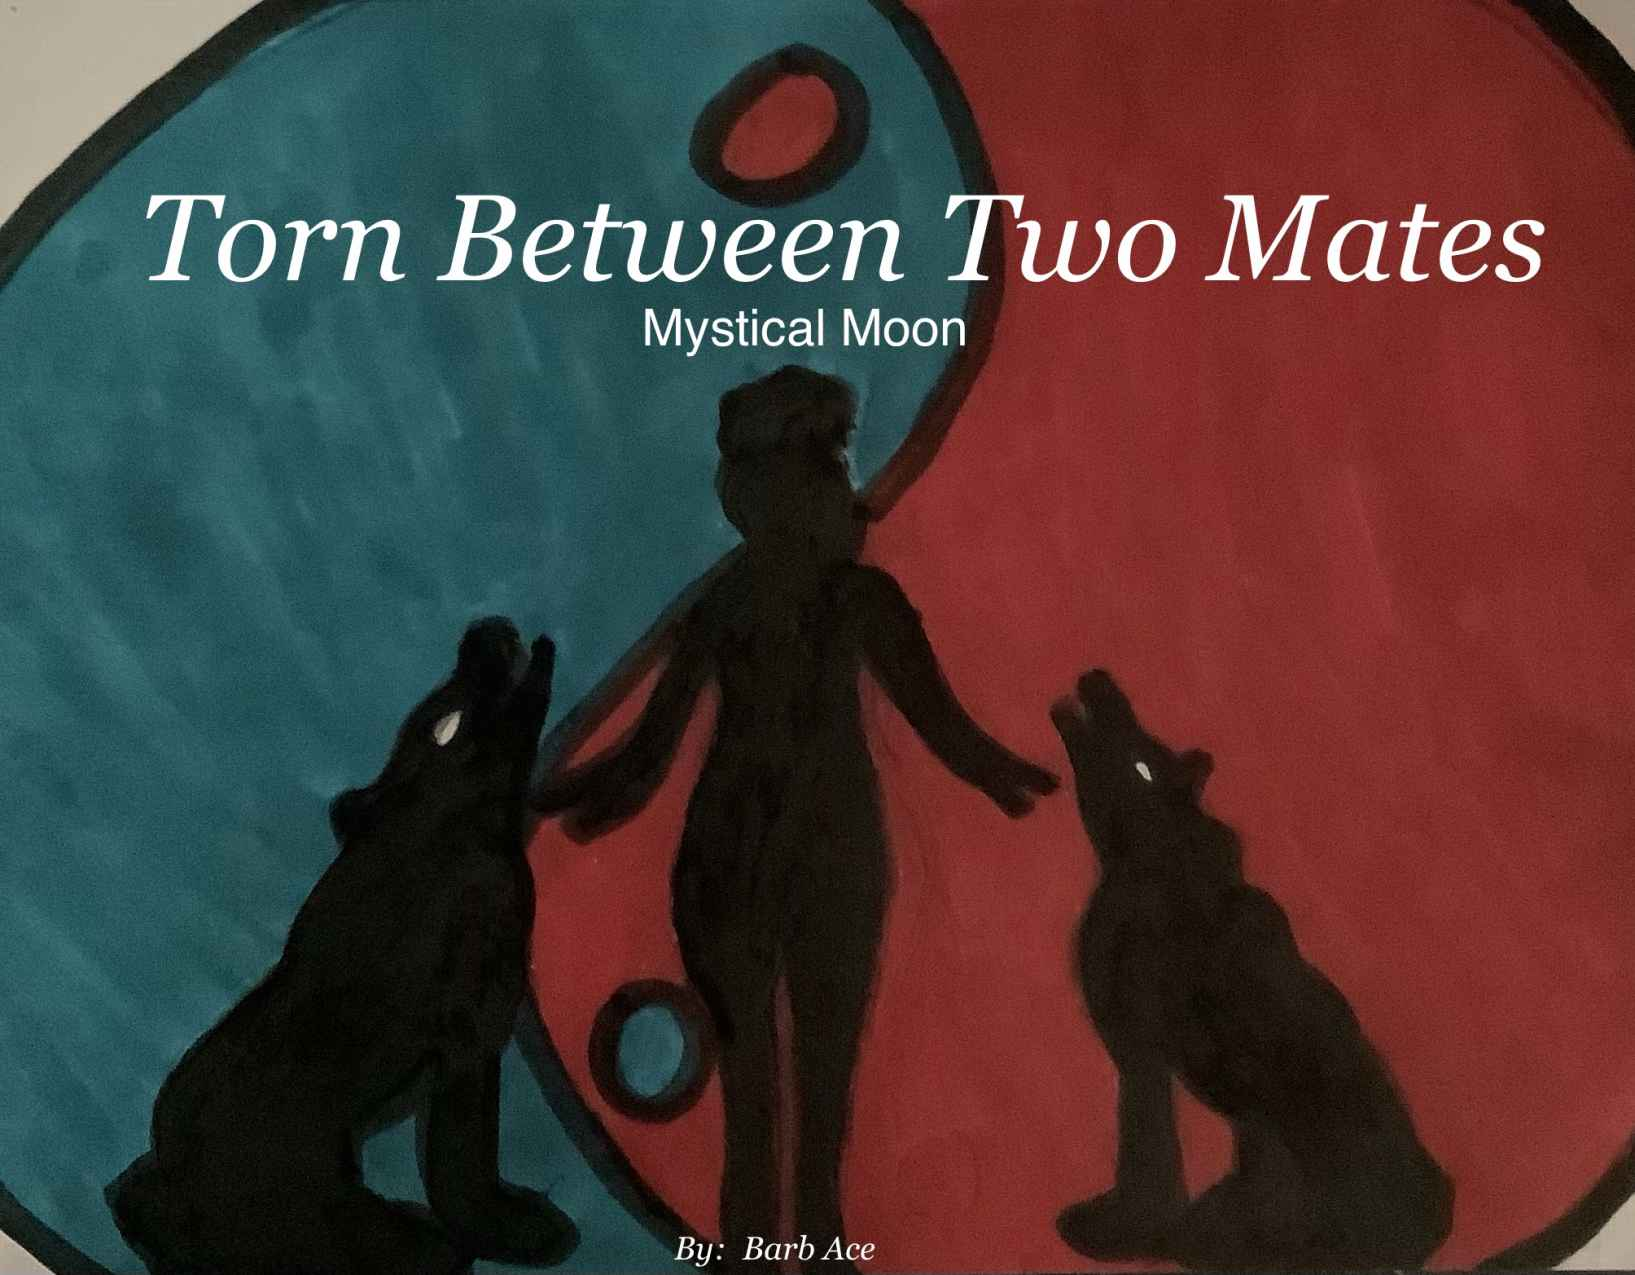 Torn Between Two Mates by Barb Ace